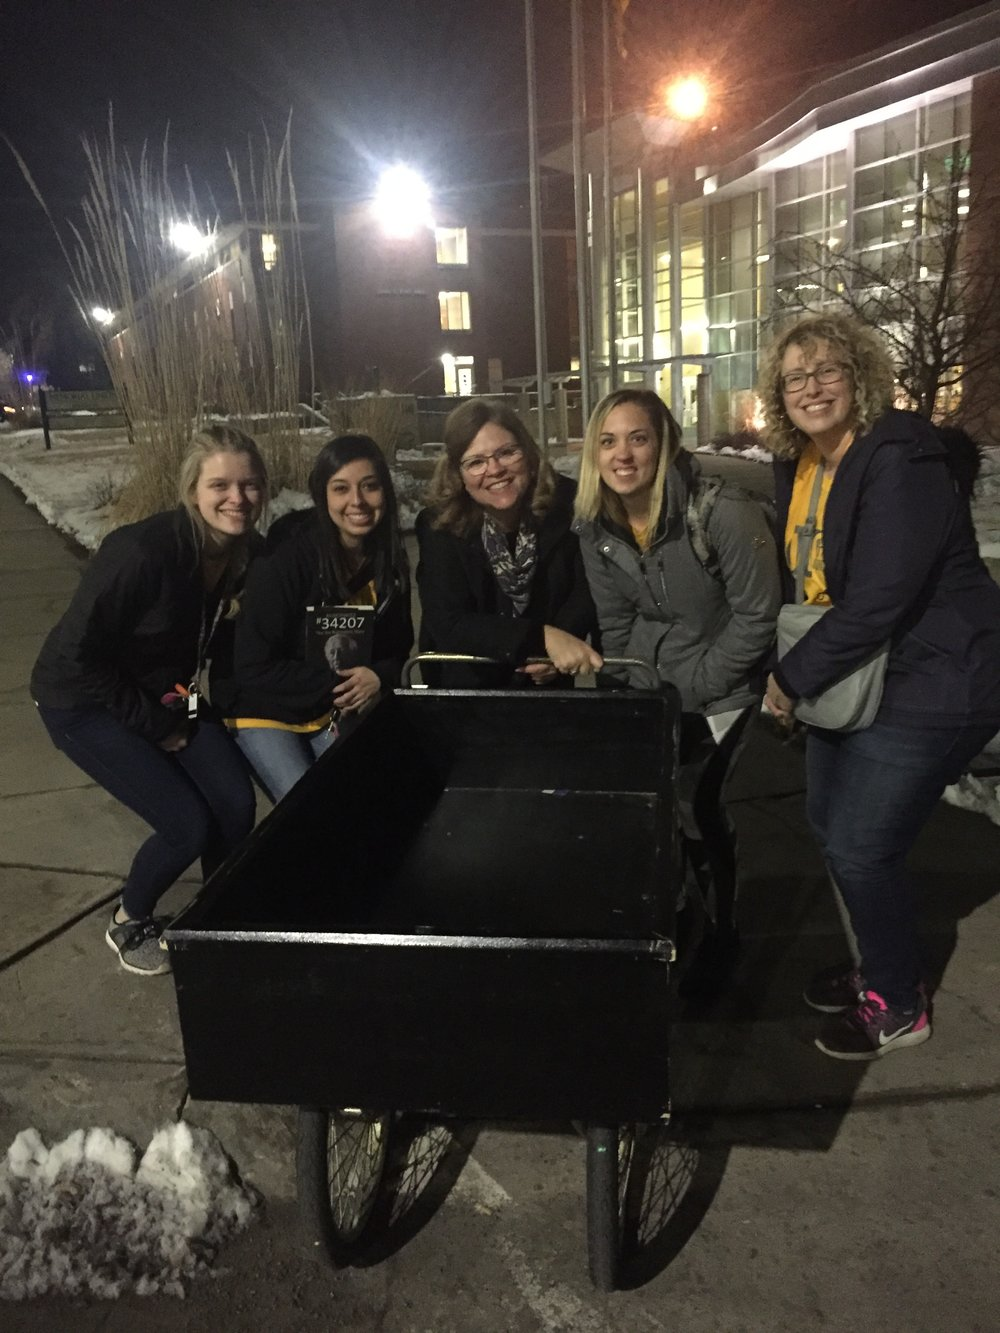 Awesome crew of helpers to help me load books at Emporia State University presentation (Emporia, Kansas) Union Activities Council (Feb. 2019)